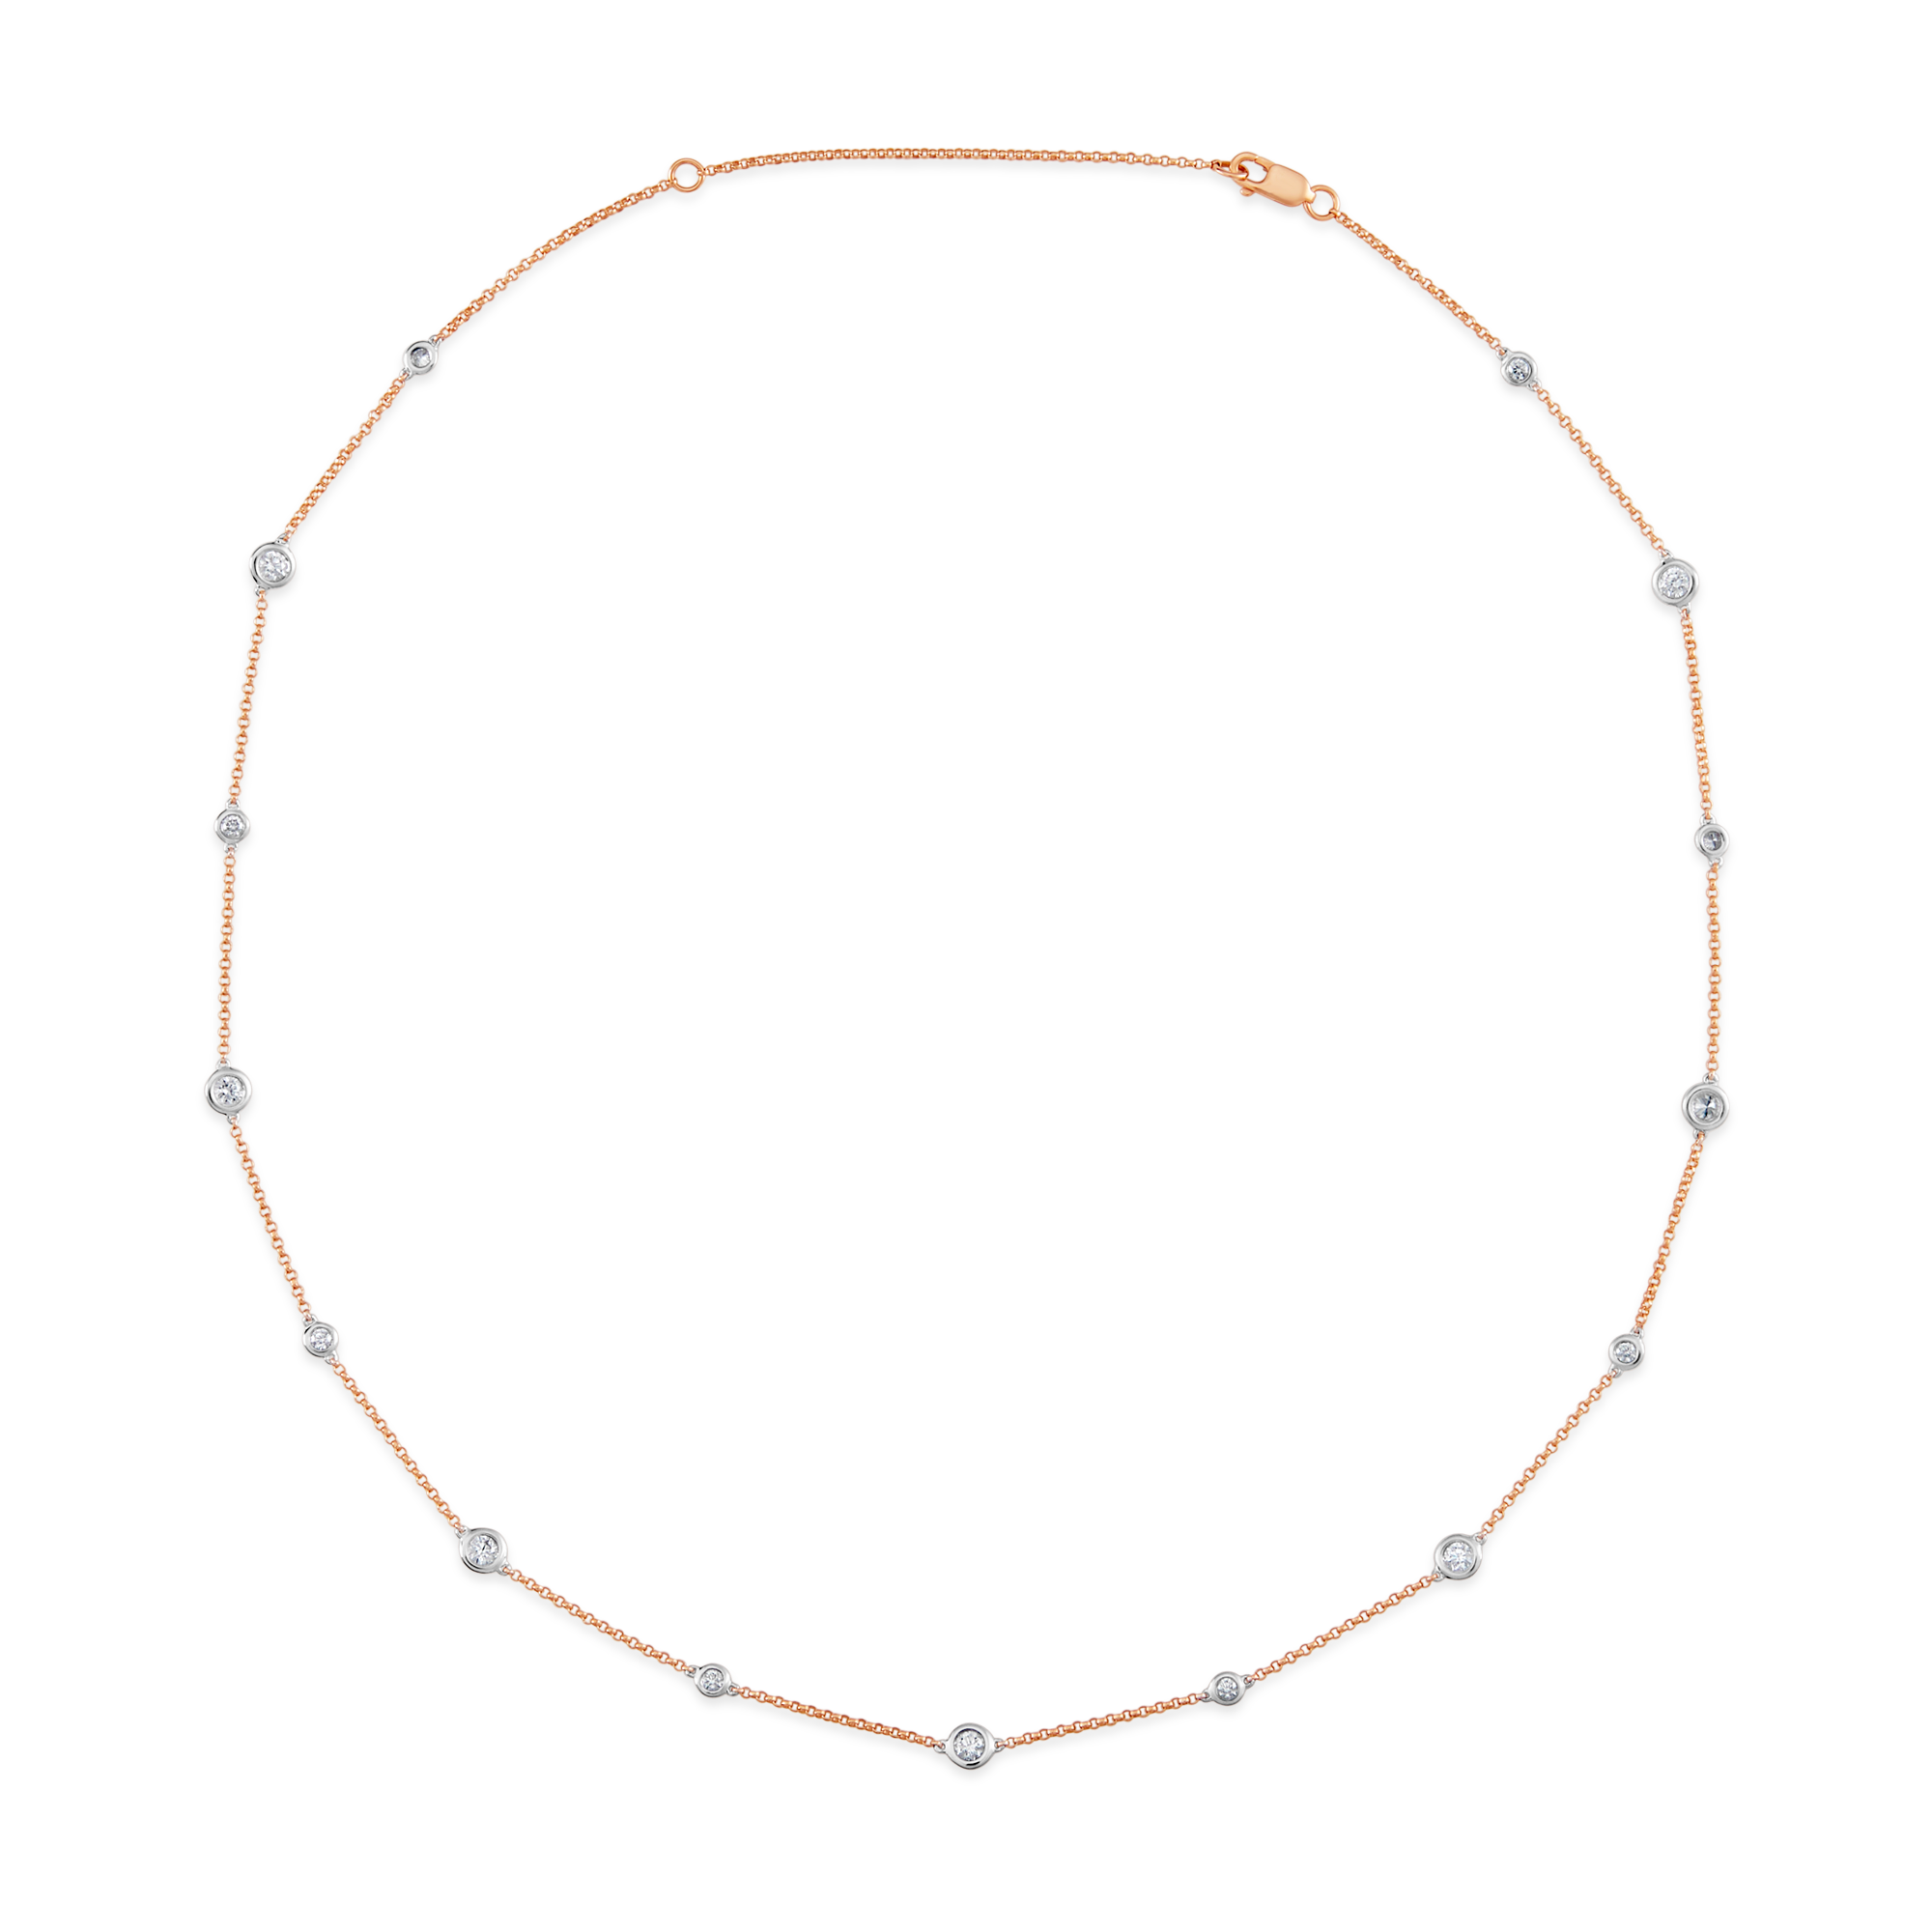 18ct Rose Gold and Diamond Neckchain